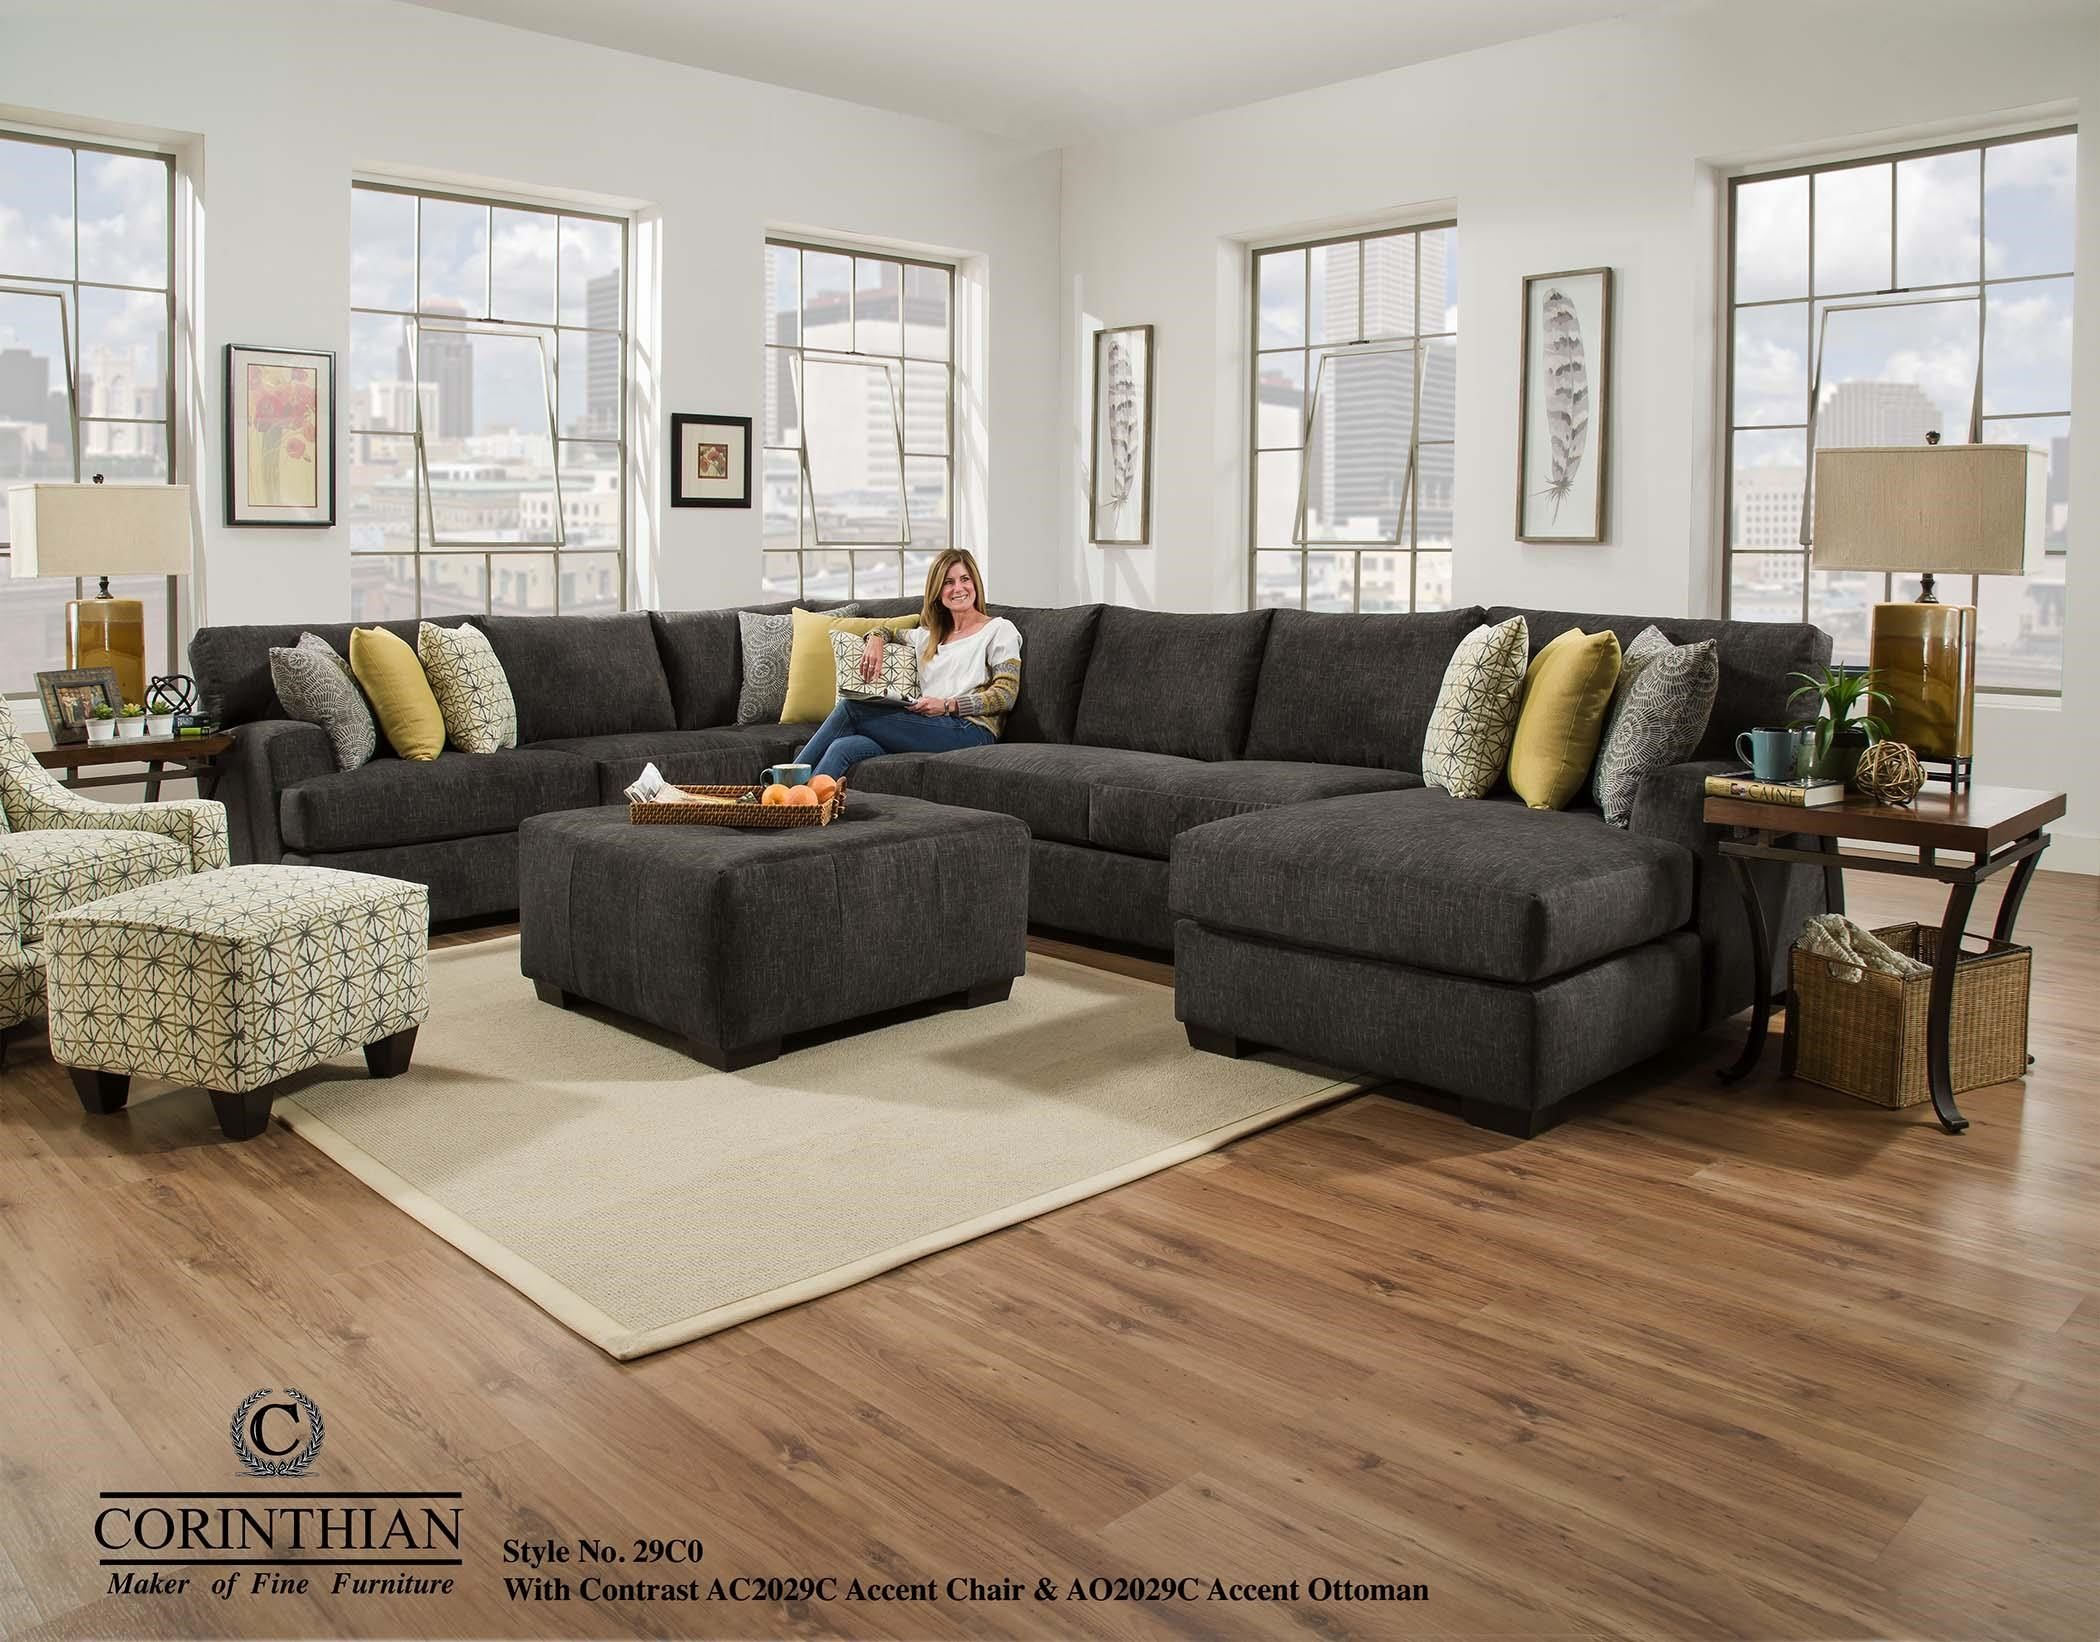 elegant 7 seat sectional sofa collection-Latest 7 Seat Sectional sofa Image